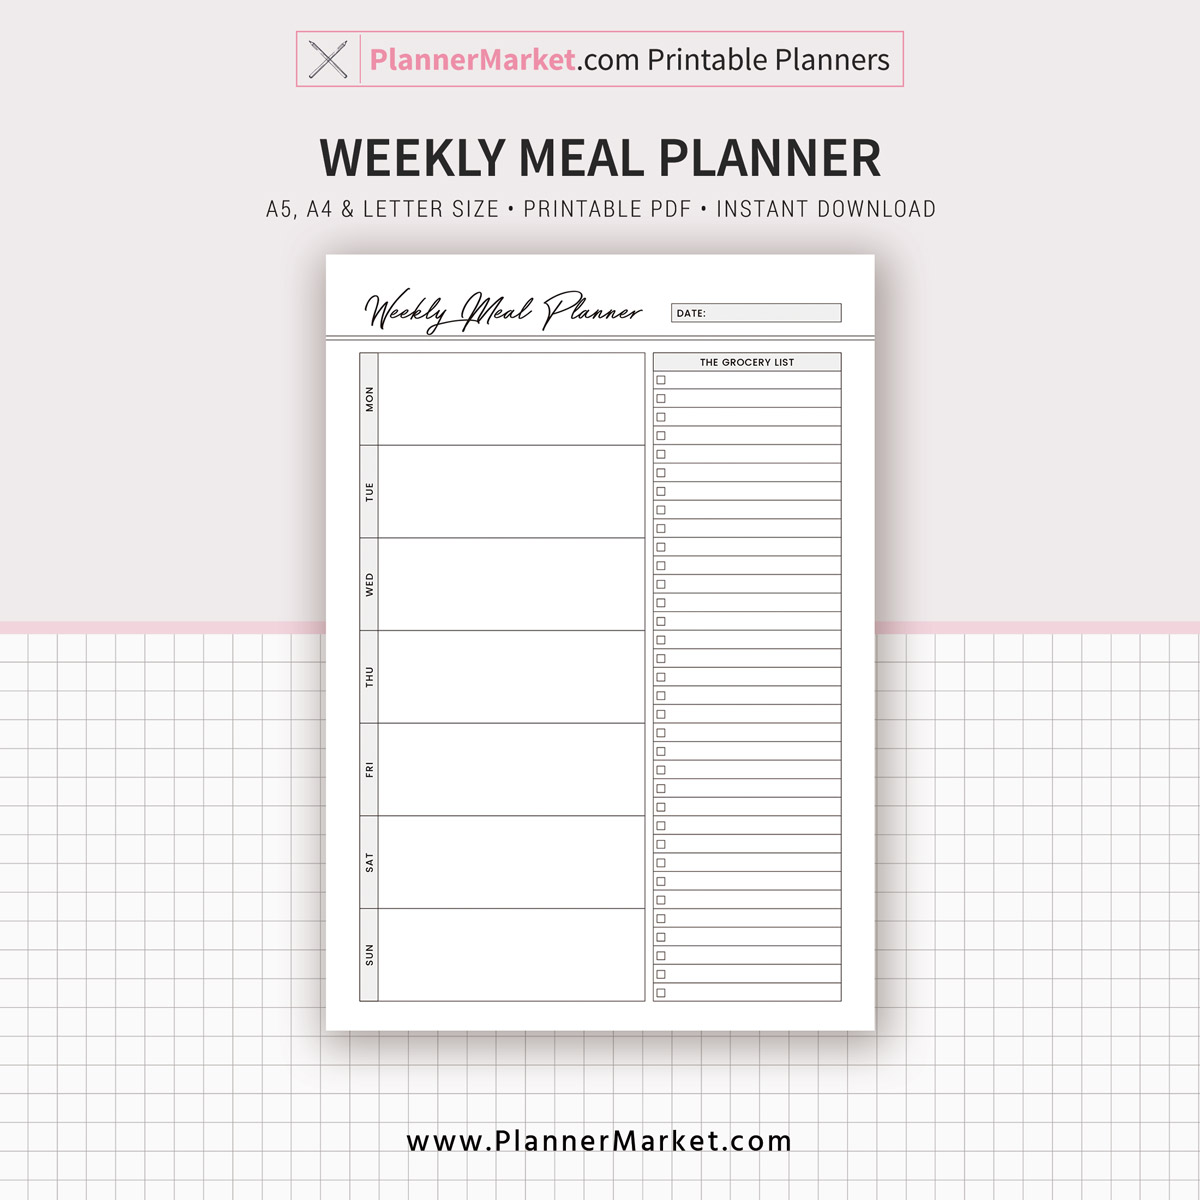 planner 2018 free download a5